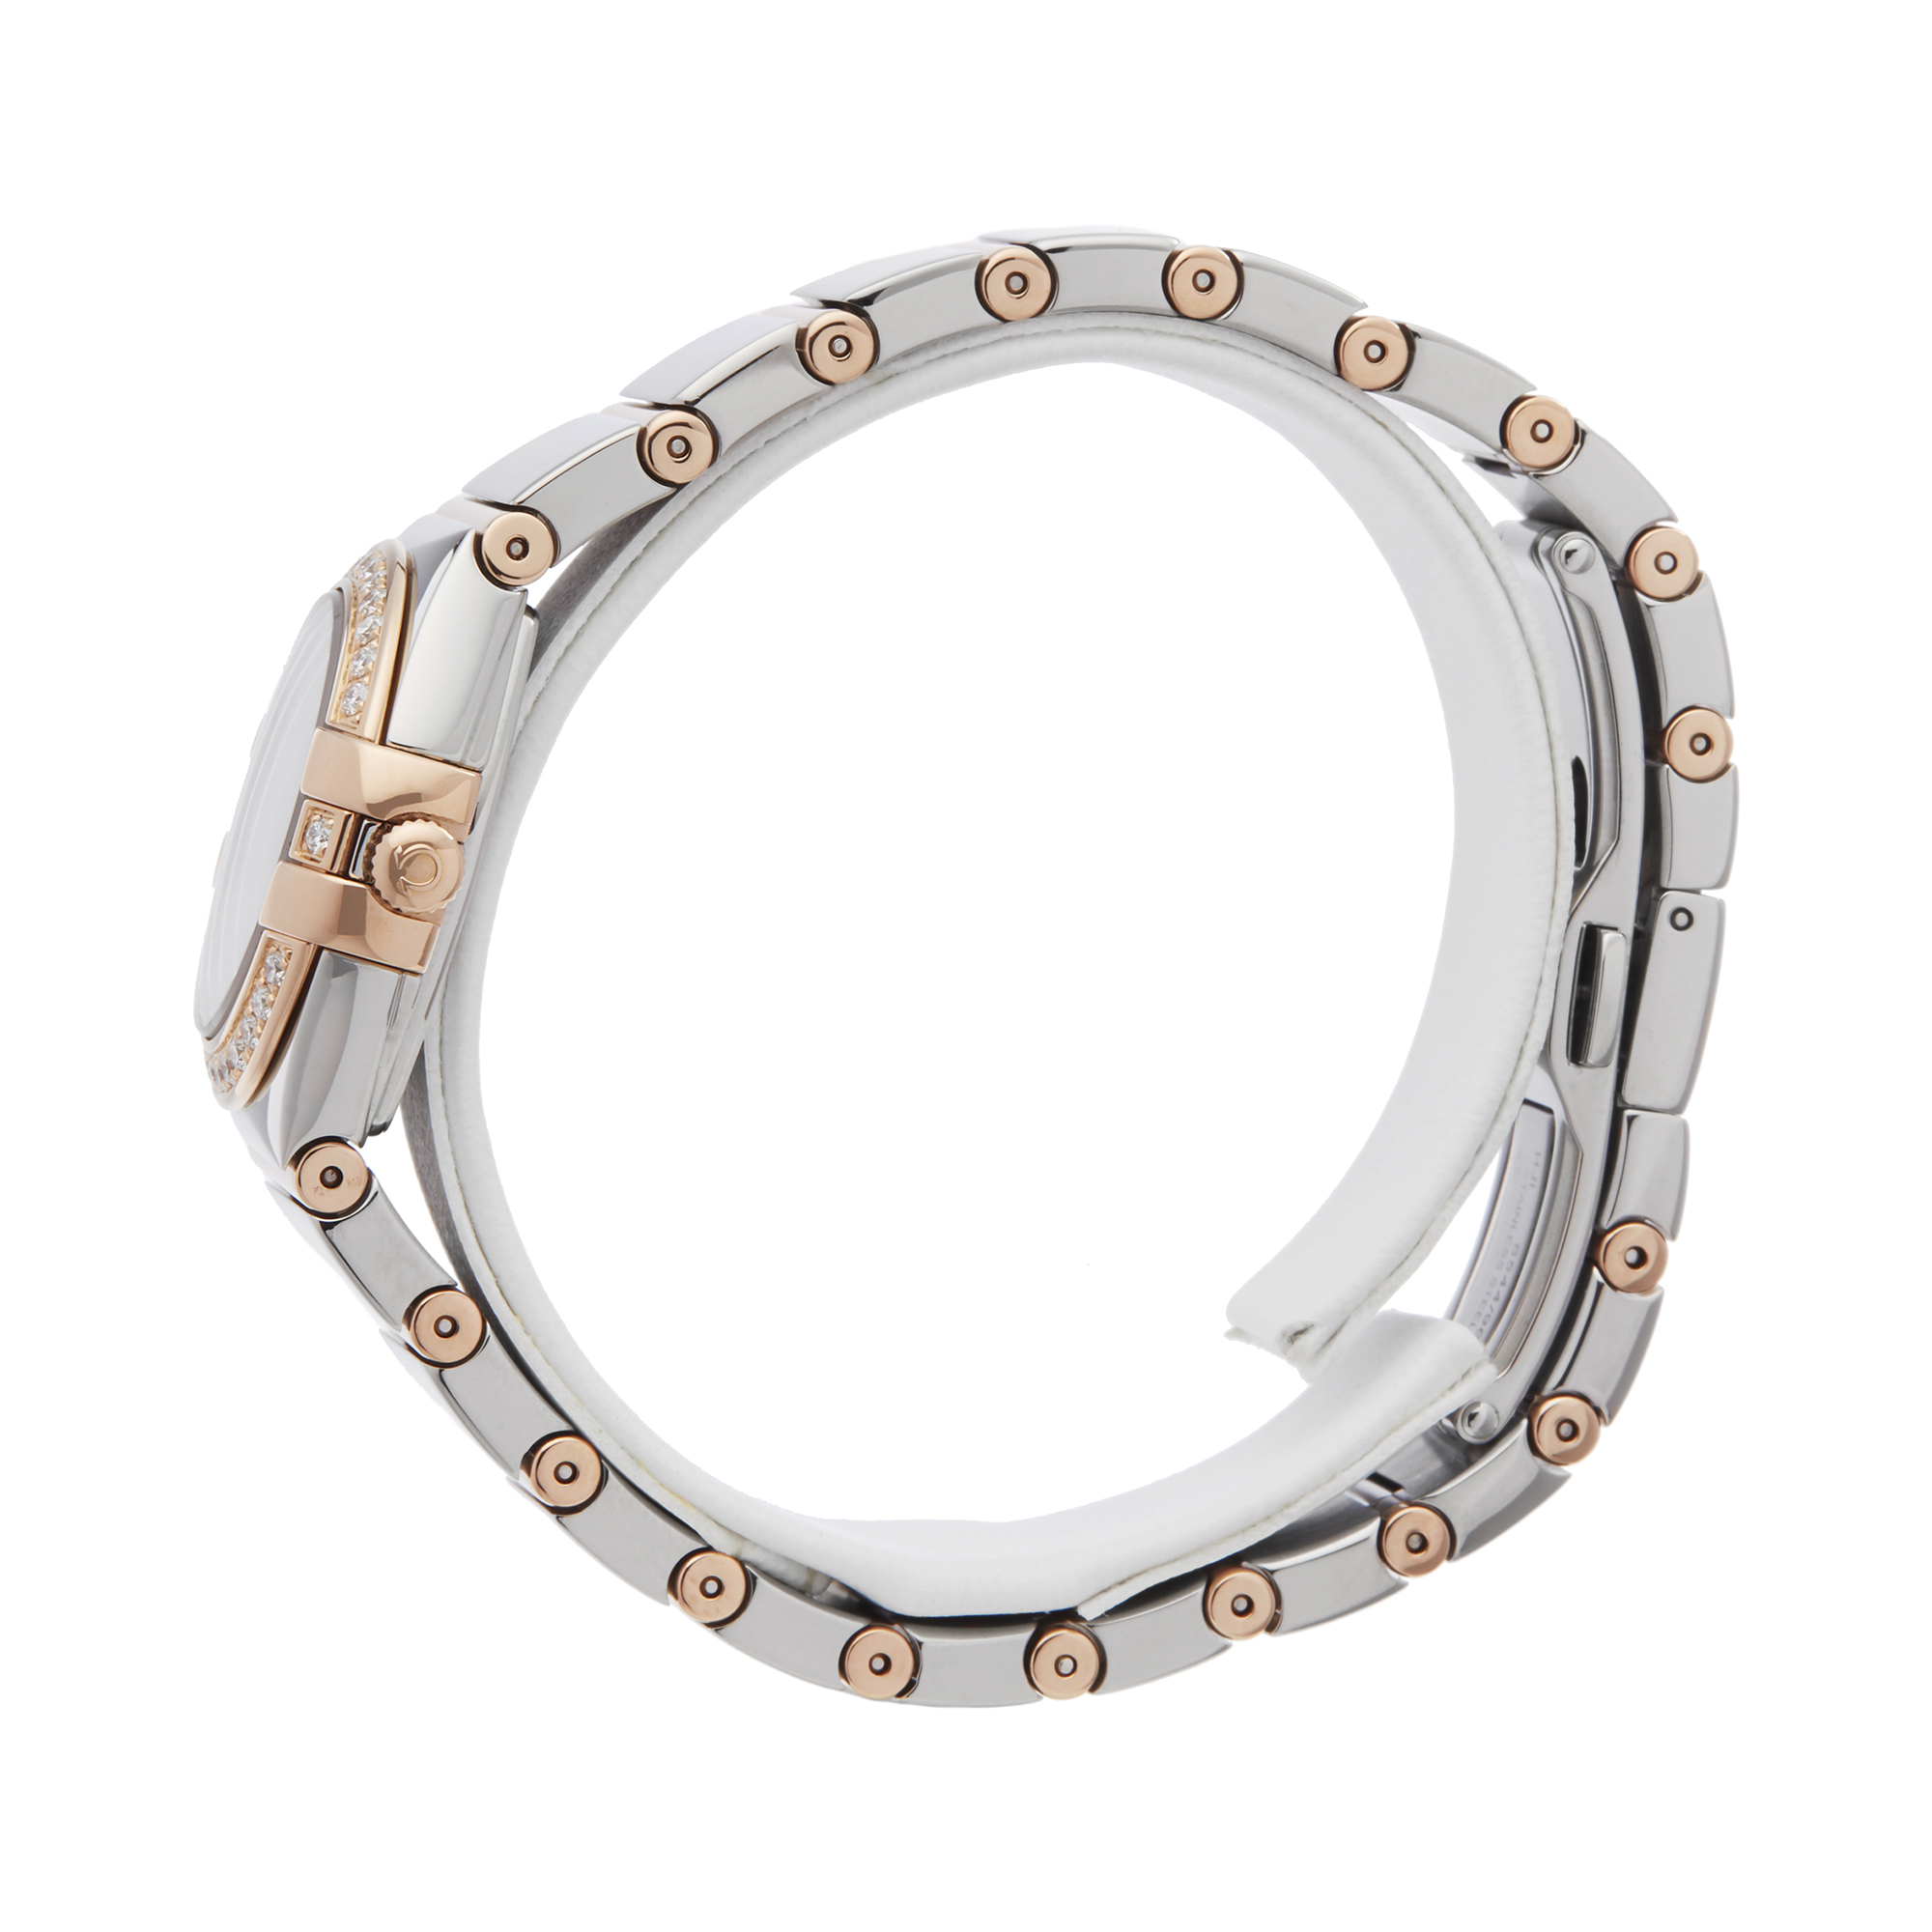 Omega Constellation 0 123.25.24.60.55.005 Ladies Stainless Steel & Rose Gold Diamond Mother Of Pearl - Image 6 of 7